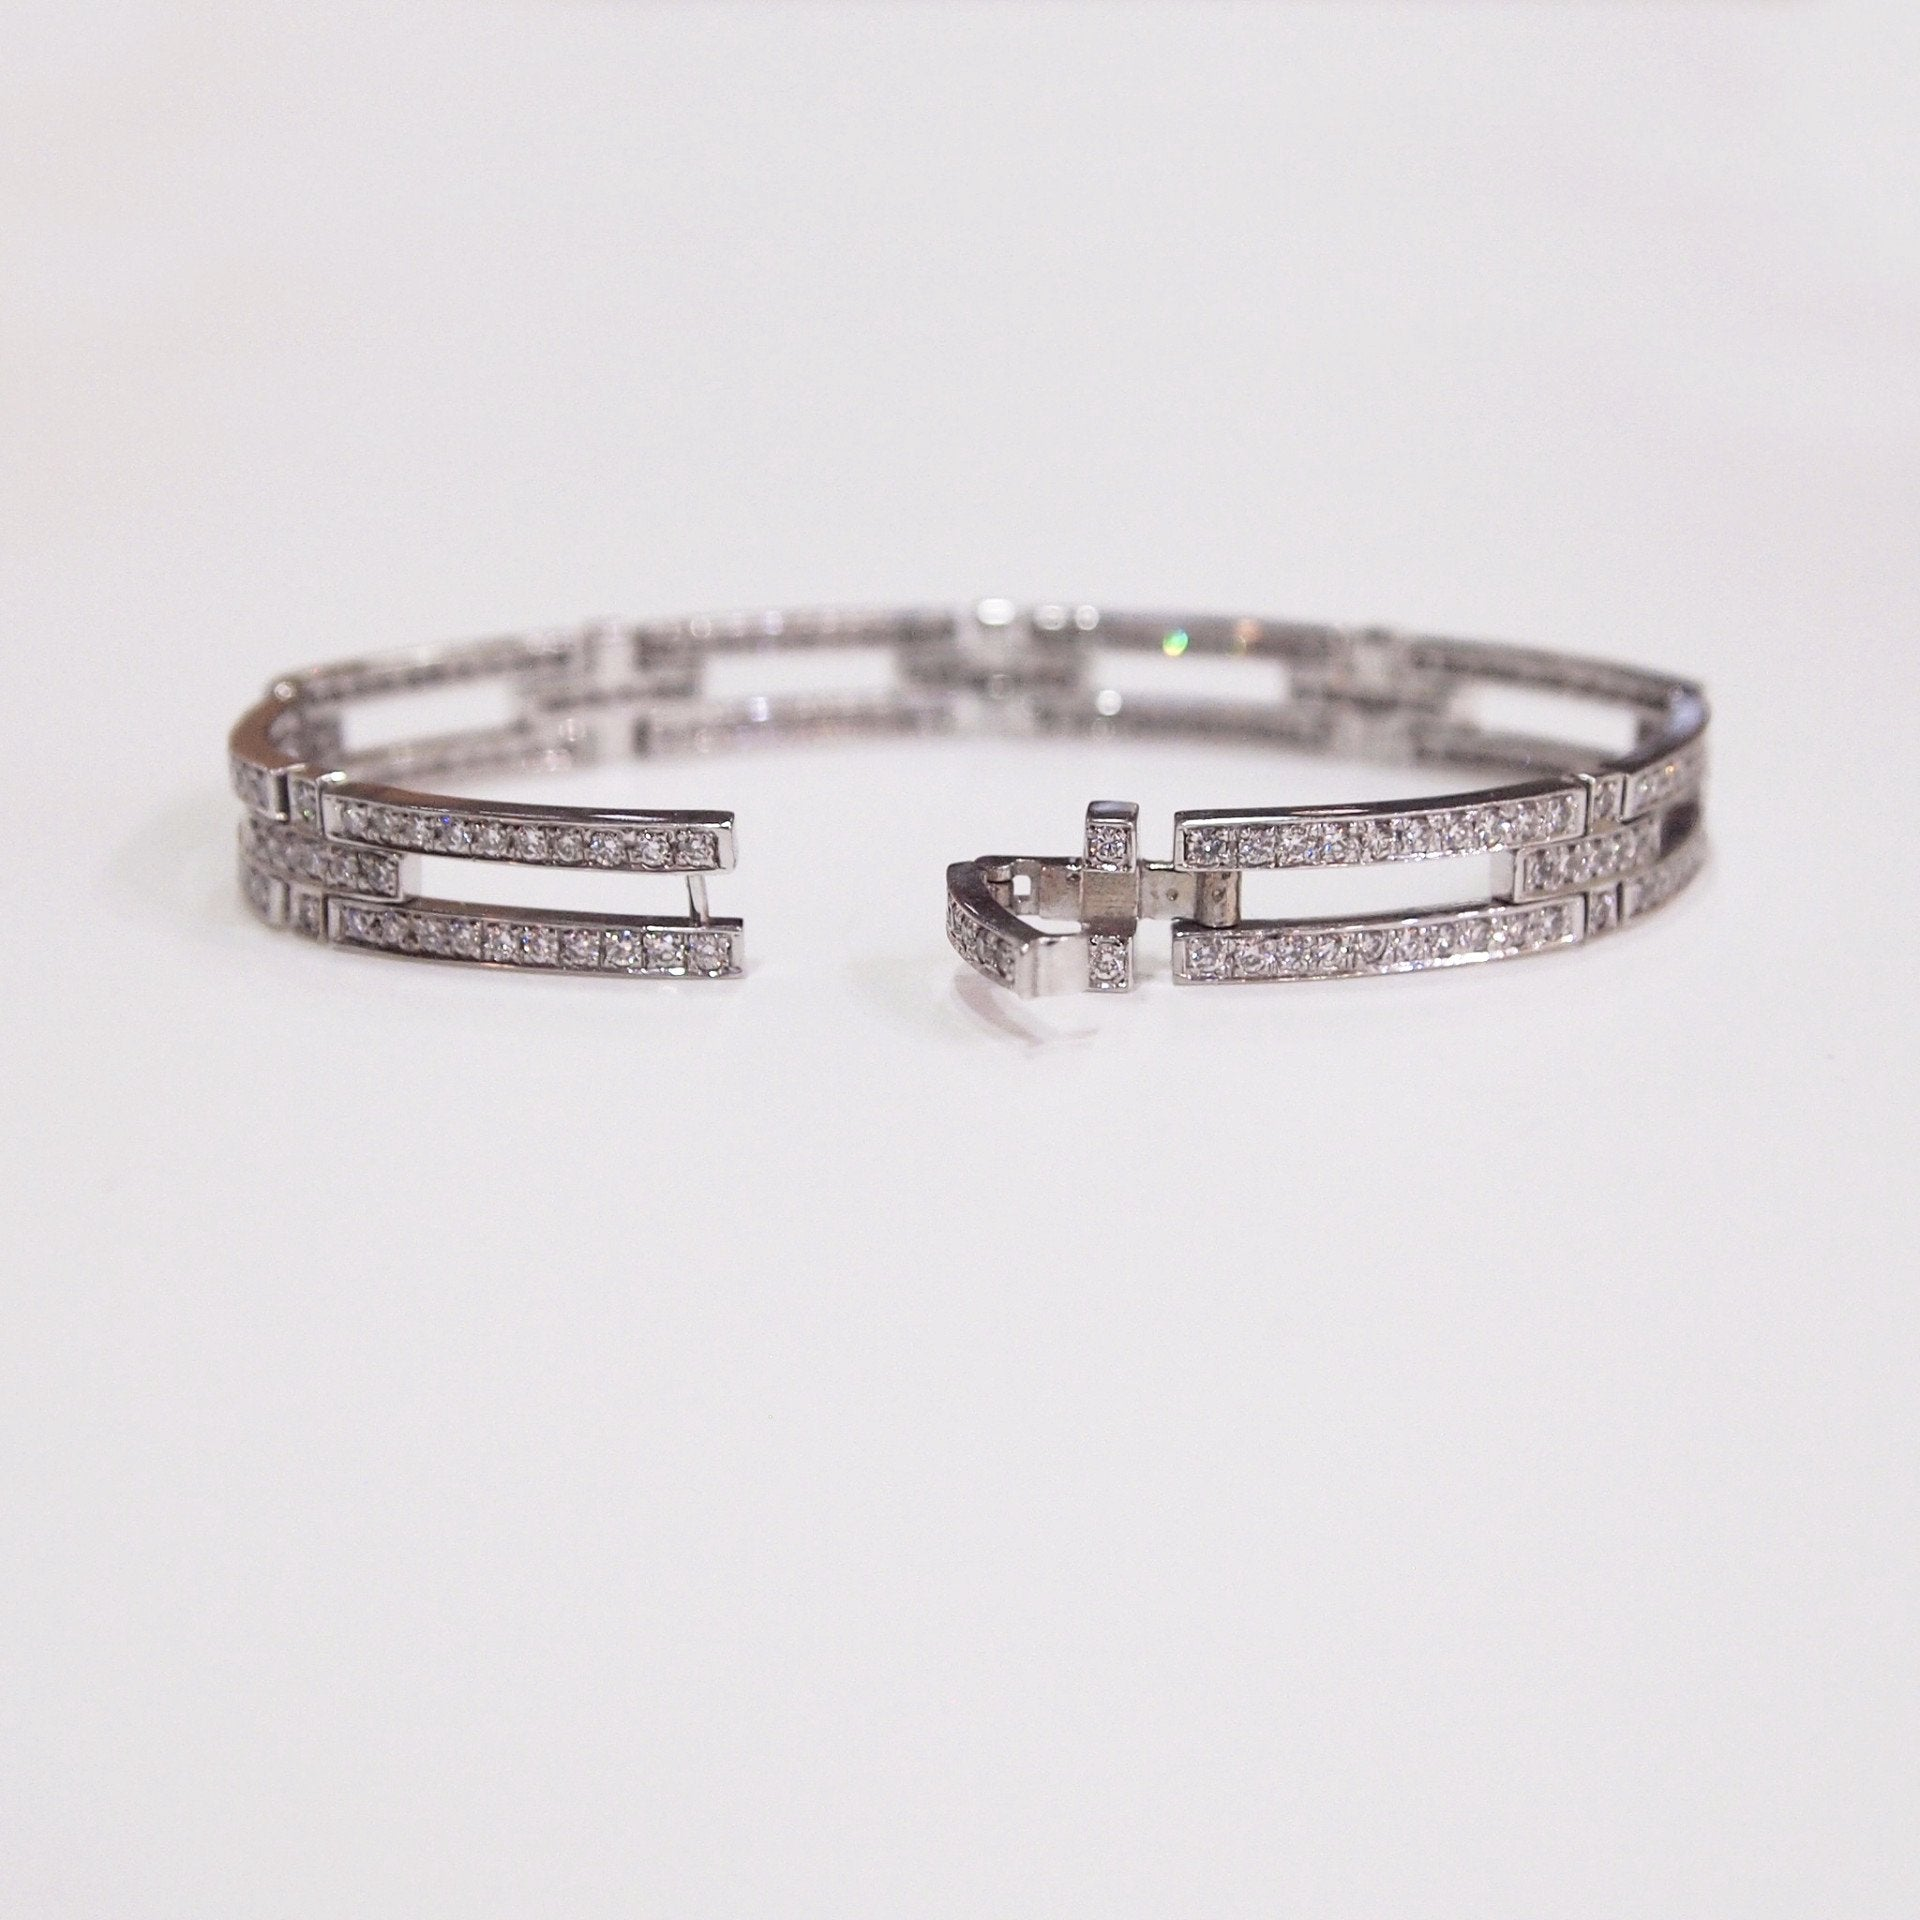 7-inch 18K white gold fancy link bracelet with round diamonds